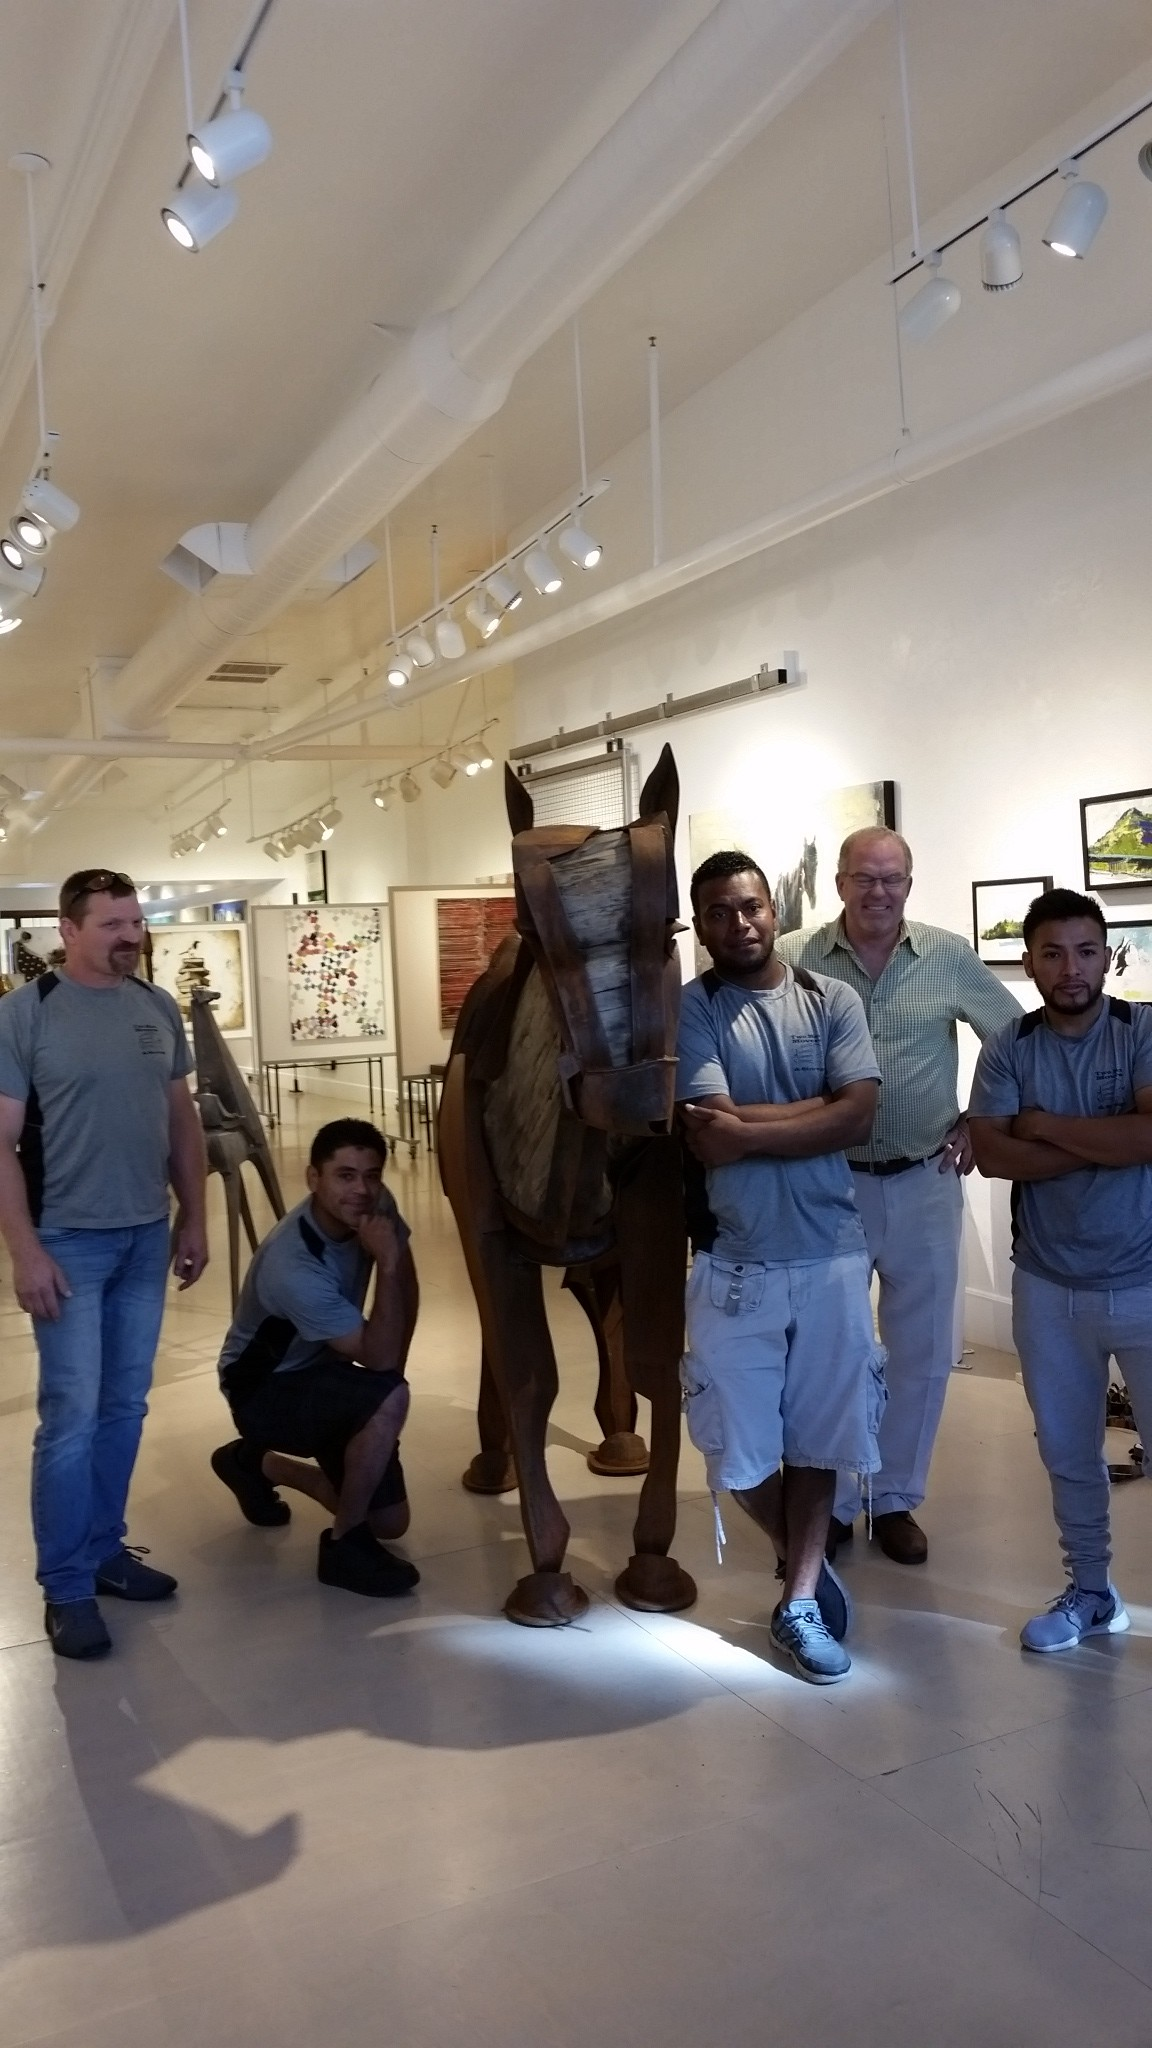 Jamie Burnes Sculpture at Gallery MAR, Moving Day